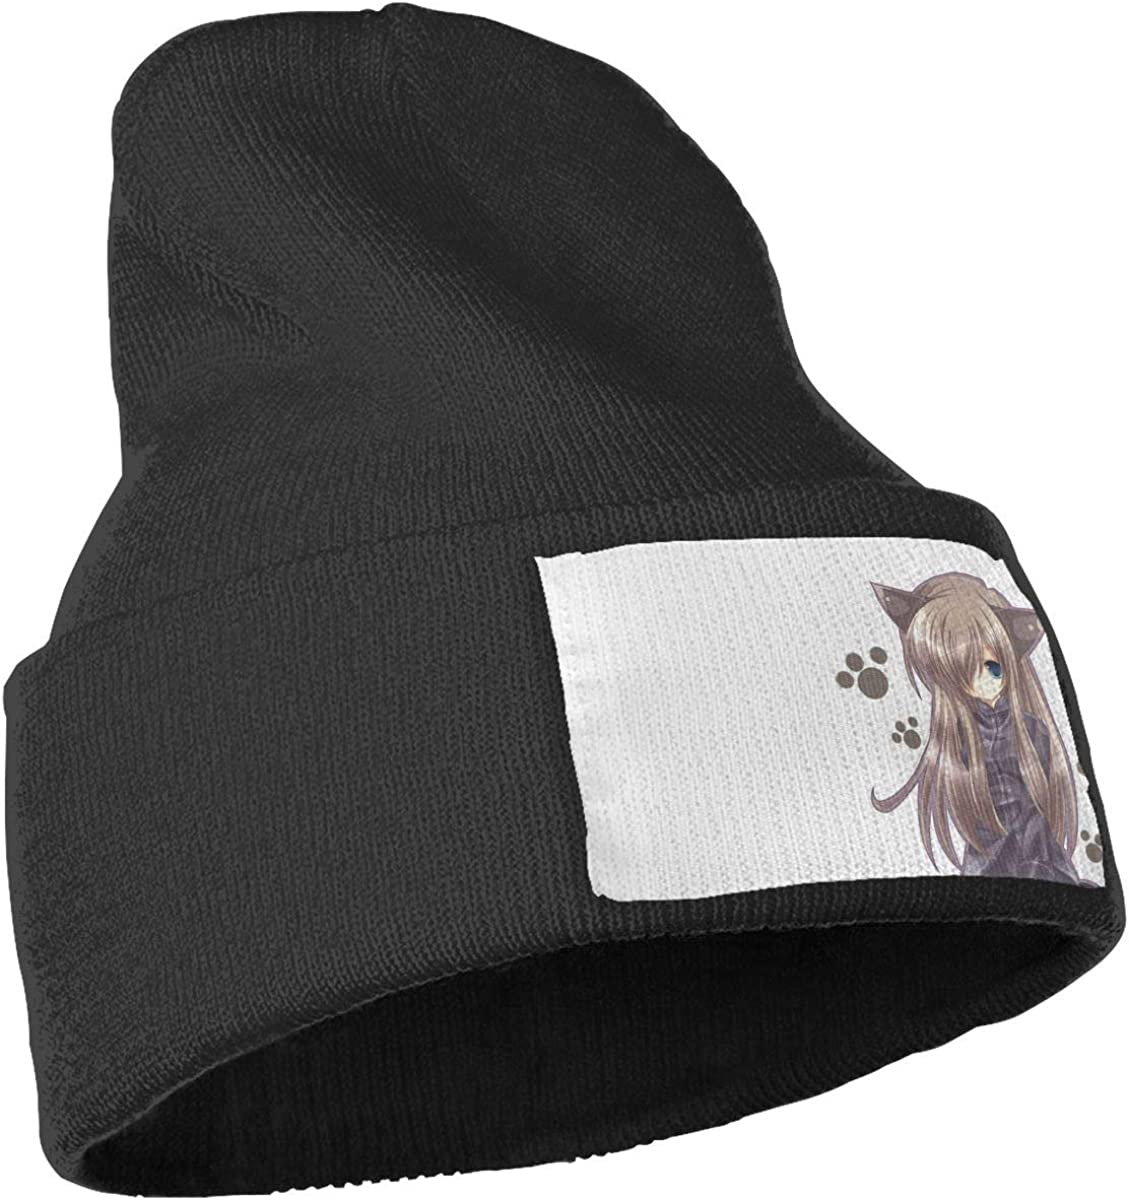 ONHIM Cat-Girl-nekomimi-Art-Anime-Girl Men /& Women Stretchy Knitting Beanie Hat Skull Rollup Beanie